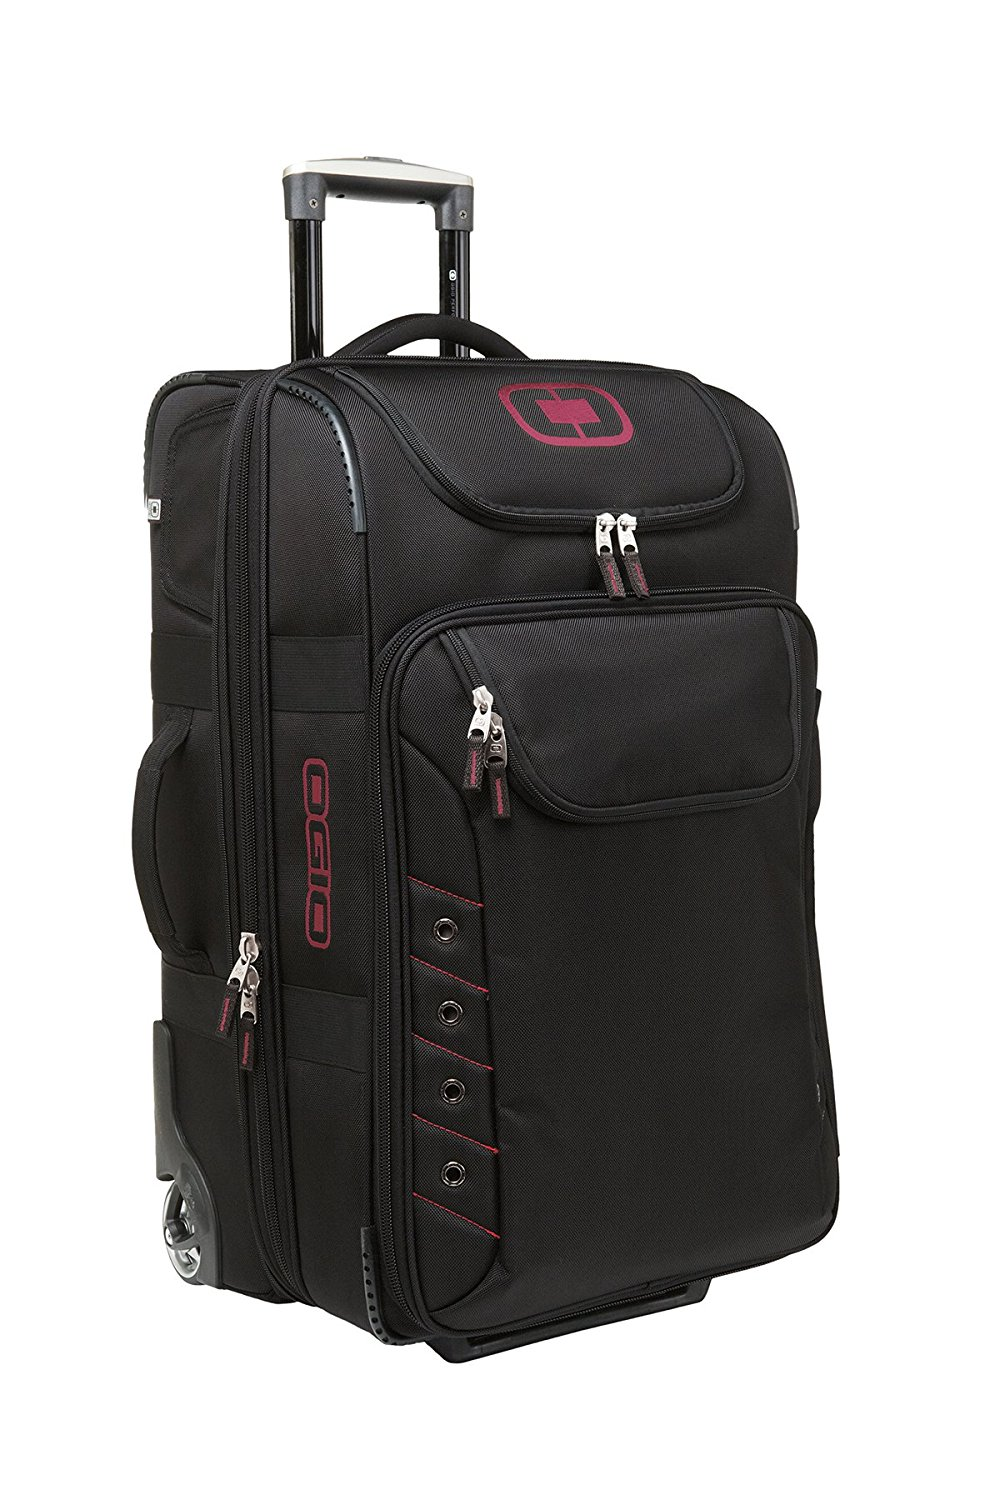 d6da3ed889fe Cheap Luggage Ogio, find Luggage Ogio deals on line at Alibaba.com